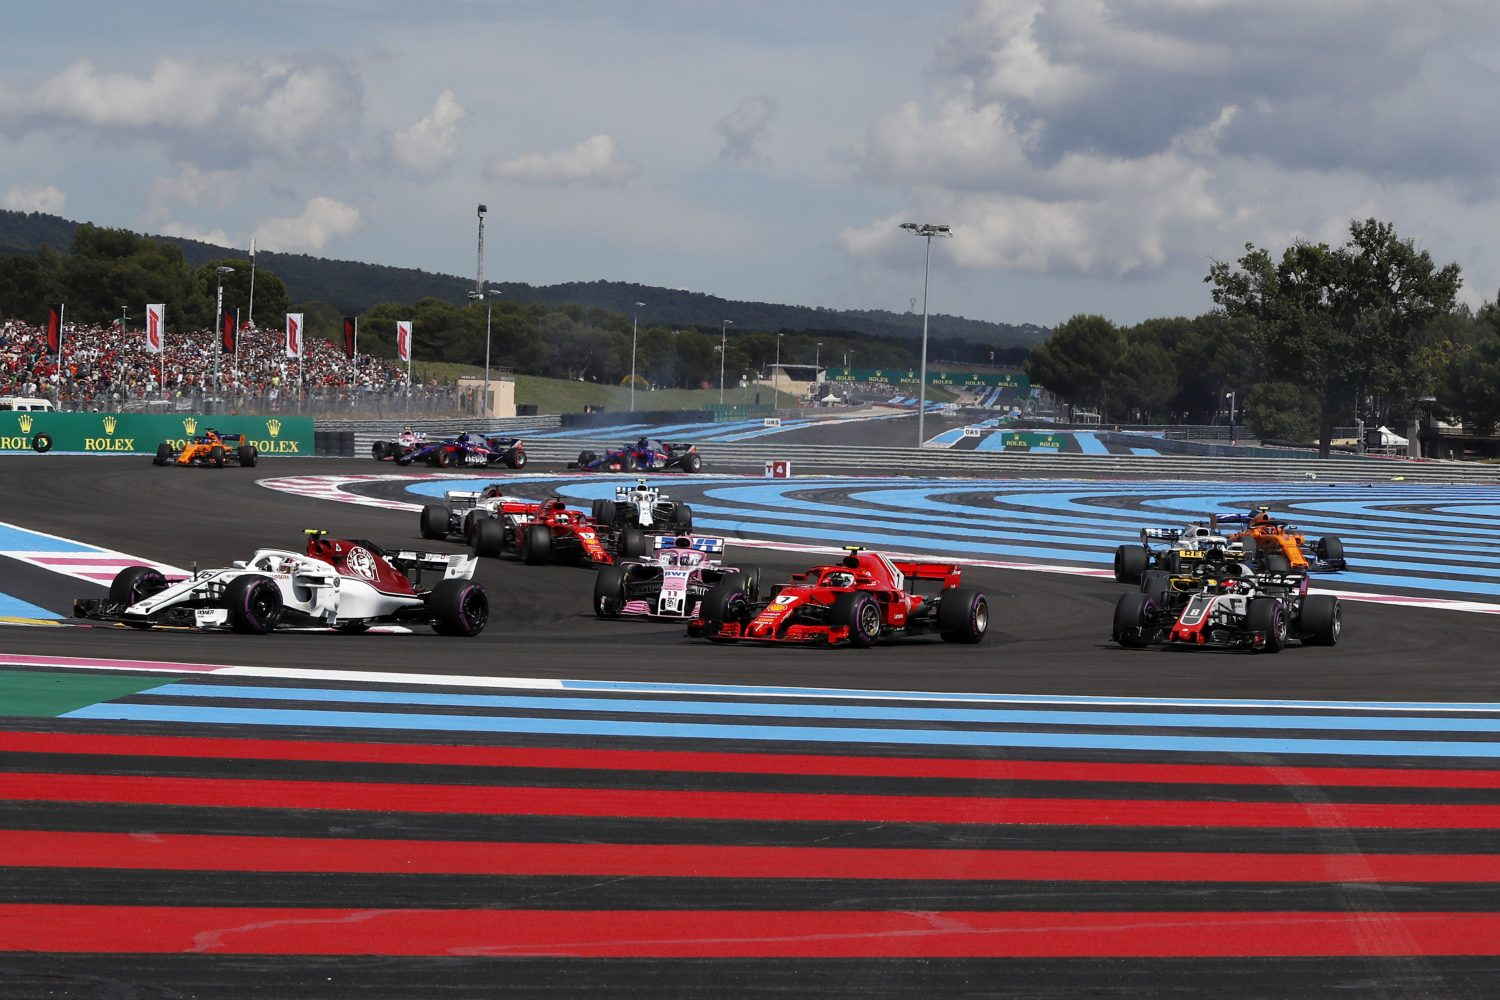 French Grand Prix Race